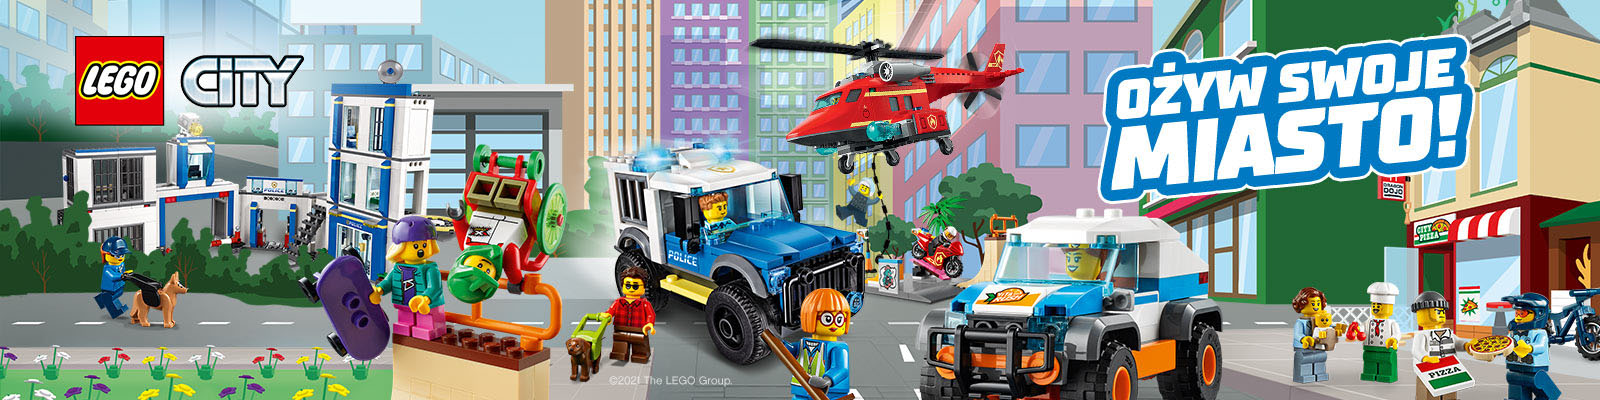 lego city 012021 hero 1600x400 allegro